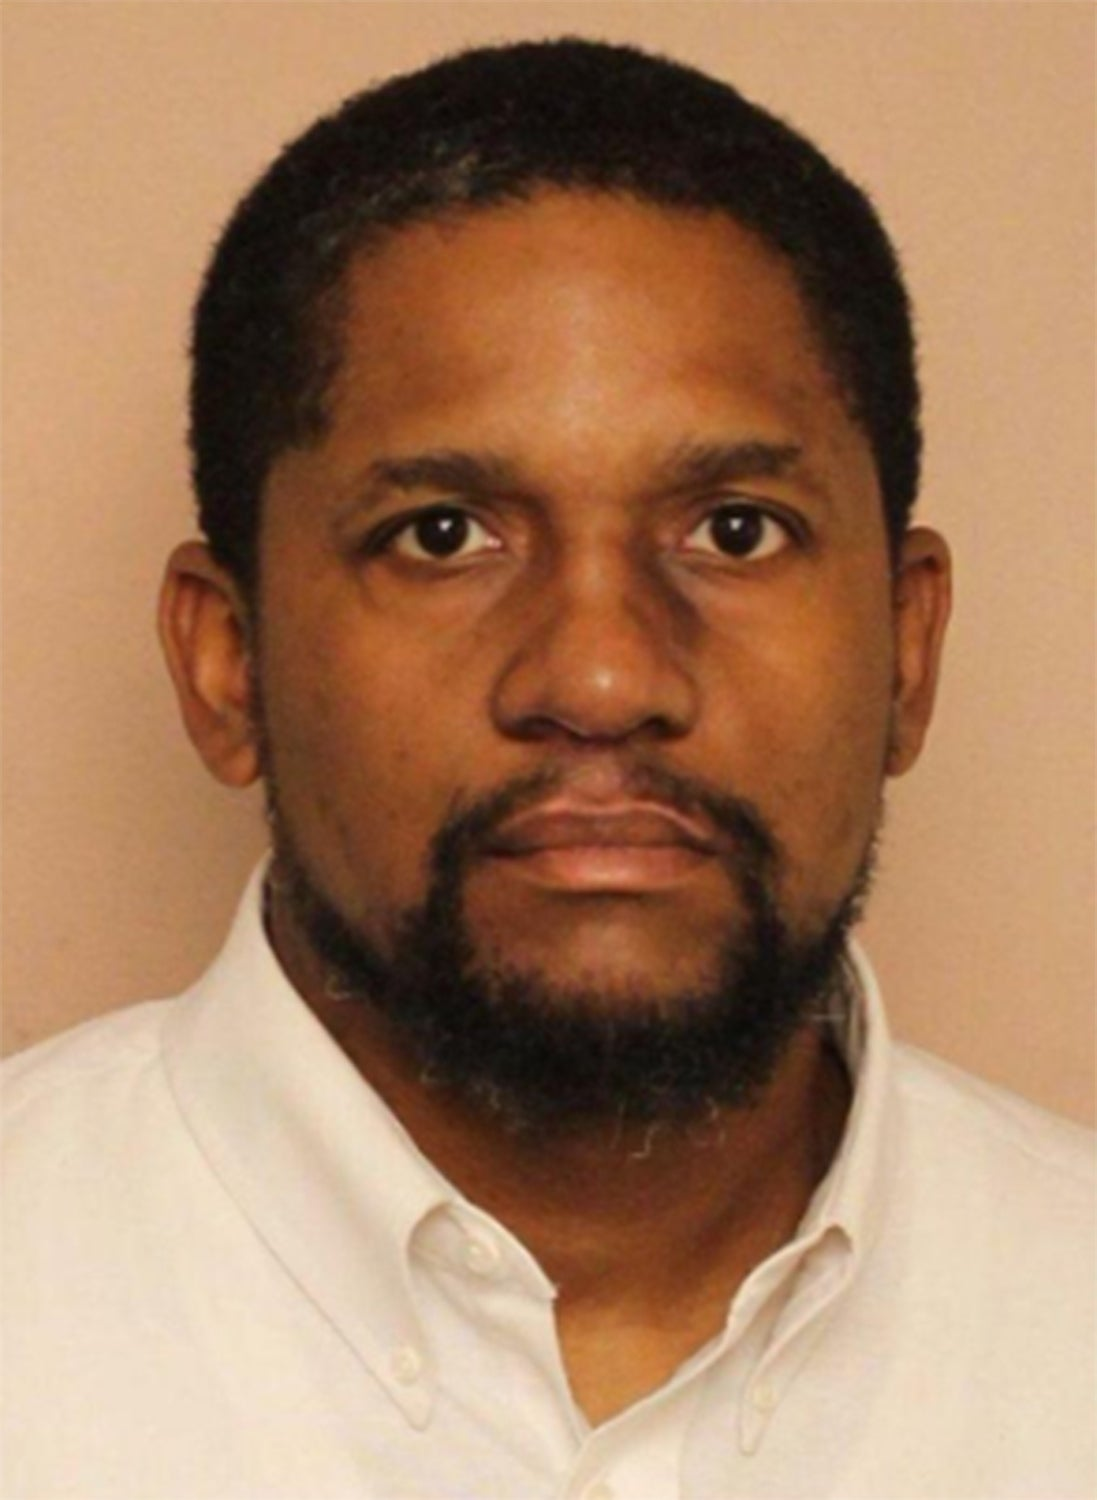 Ronald Dickens is suspected to have killed his wife, 30-year-old Shawnton Clay